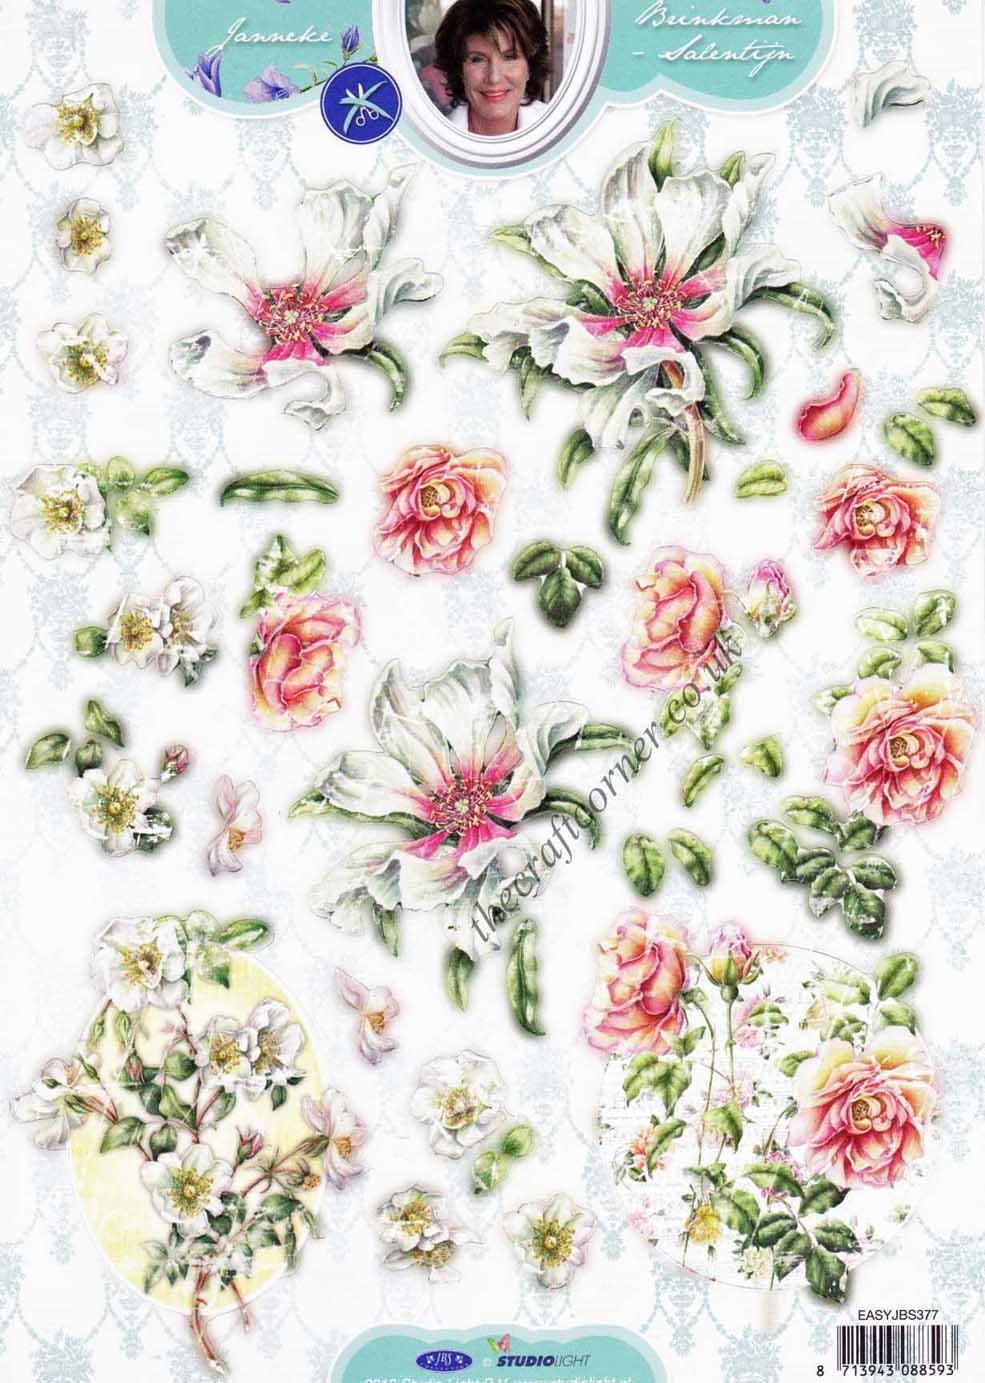 Honeysuckle Amp Rose Flower Die Cut 3d Decoupage Sheet